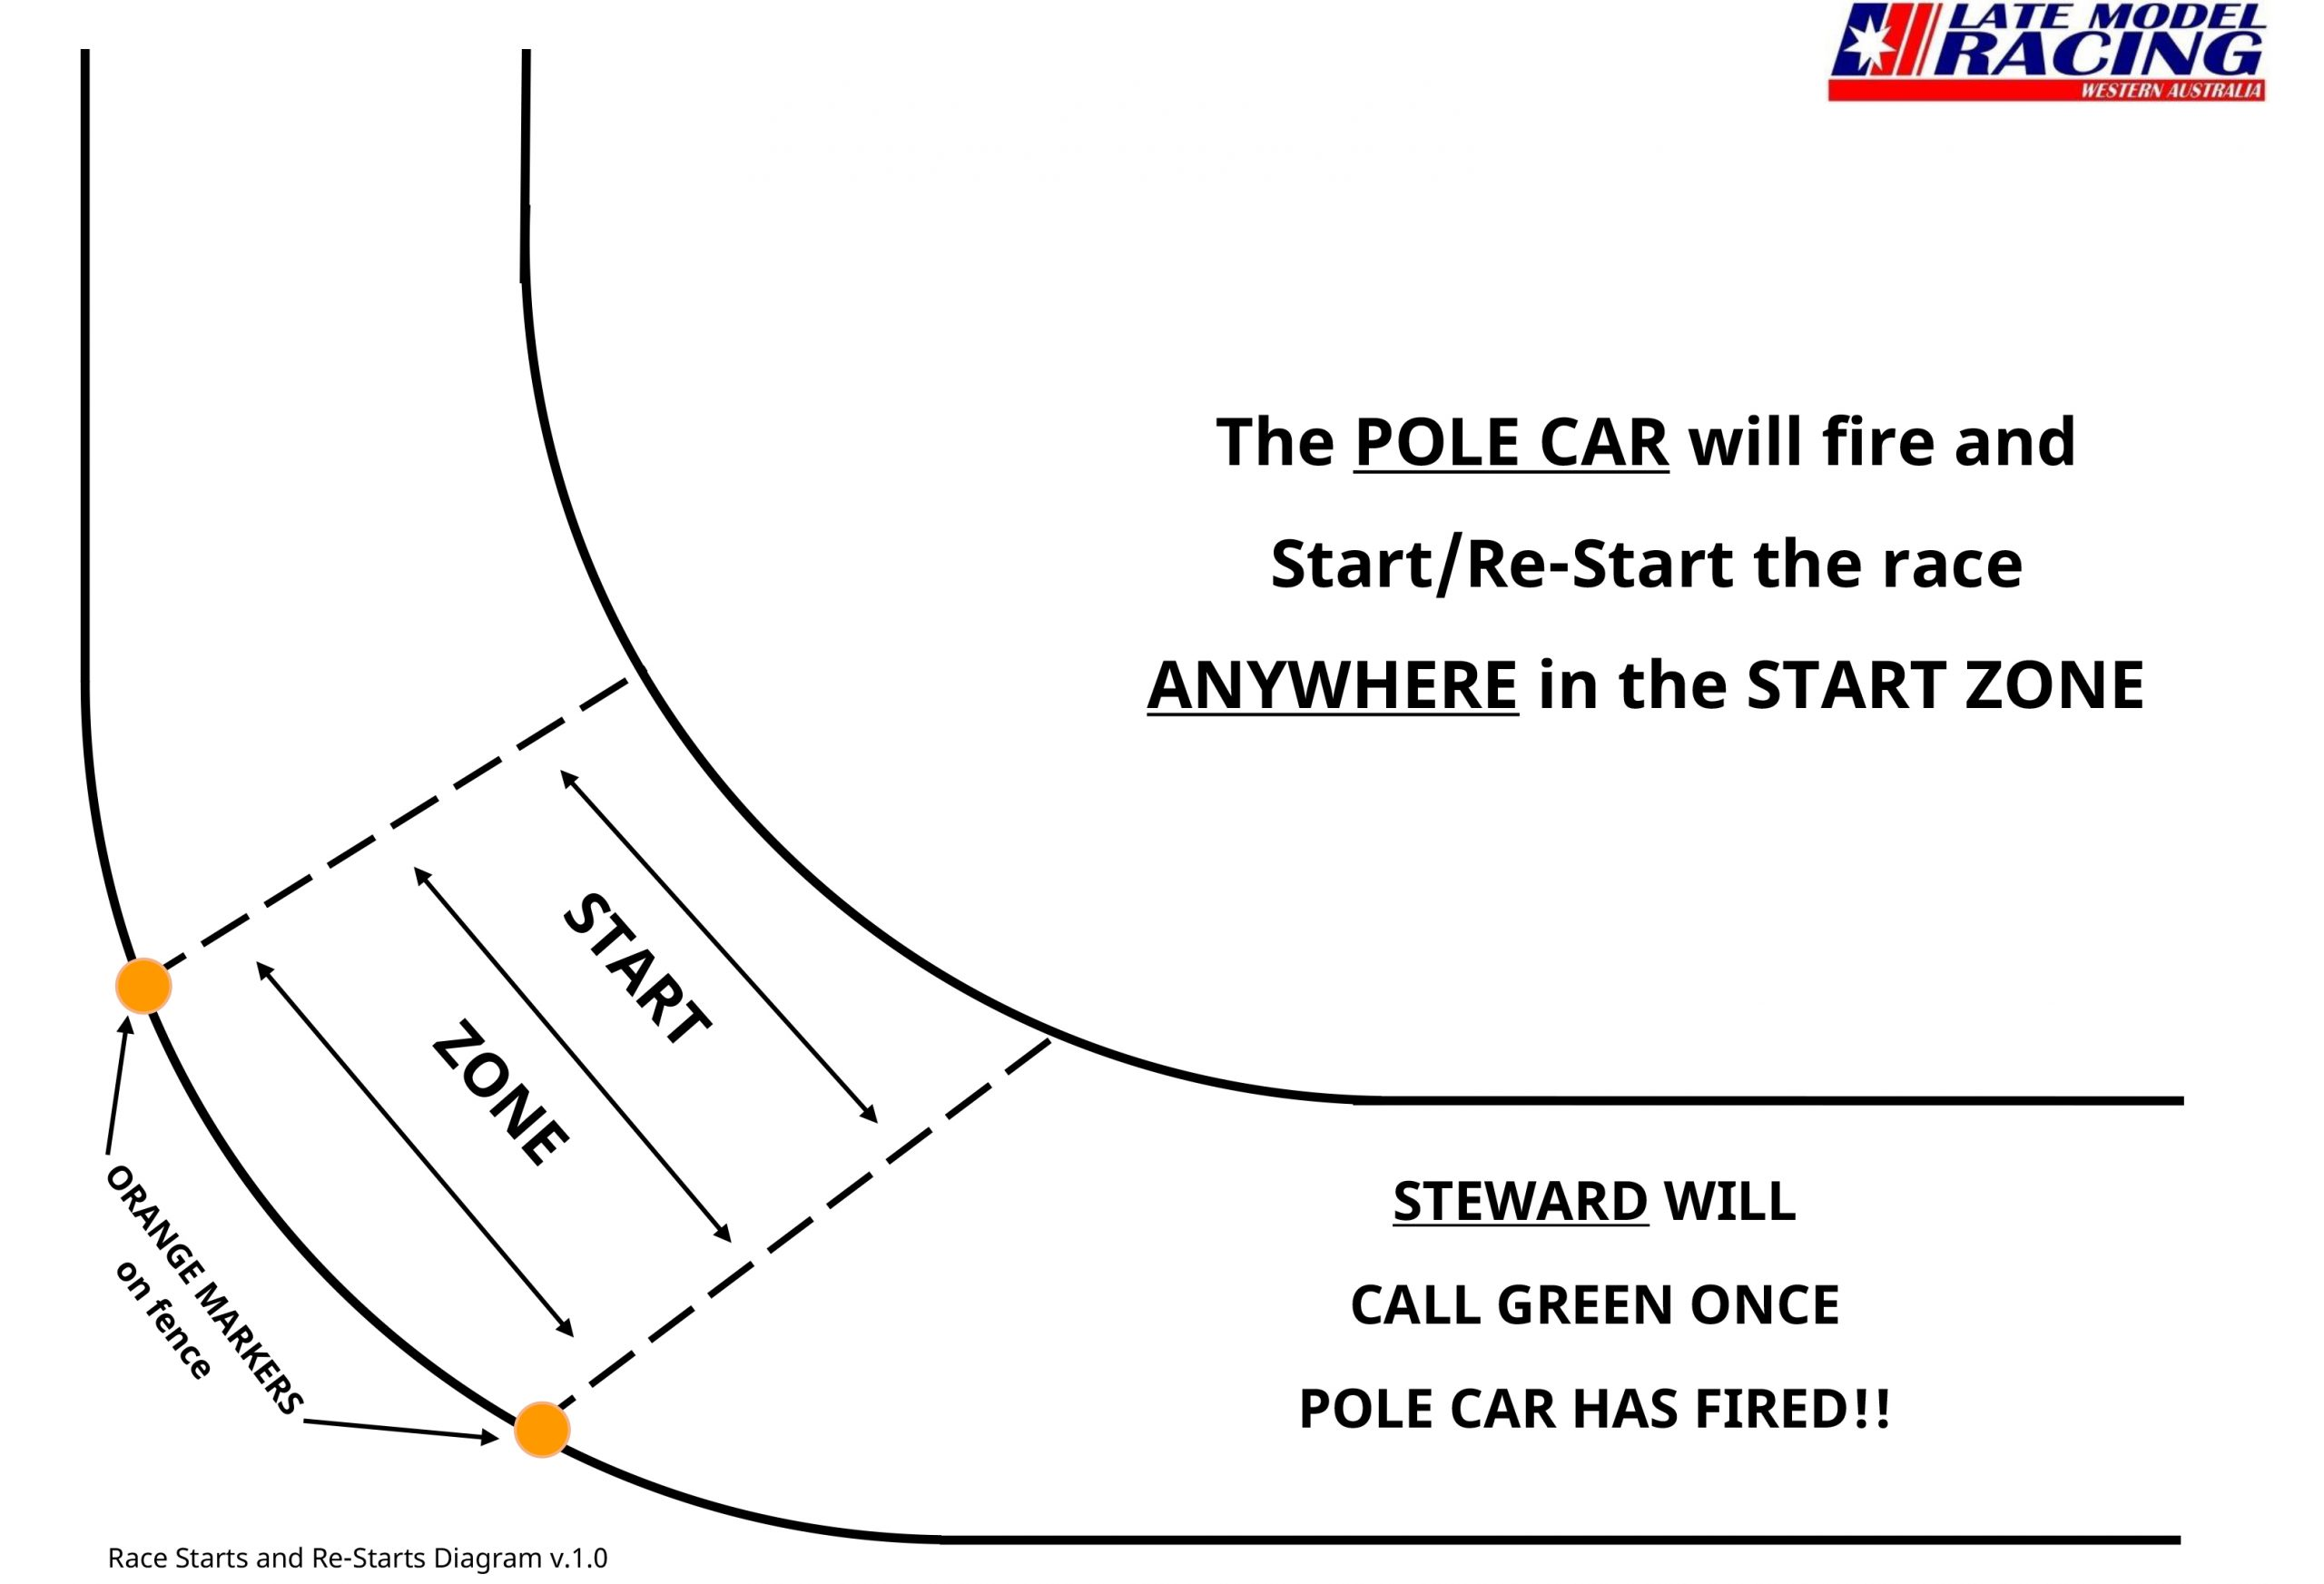 Race Starts and Re-Starts Diagram